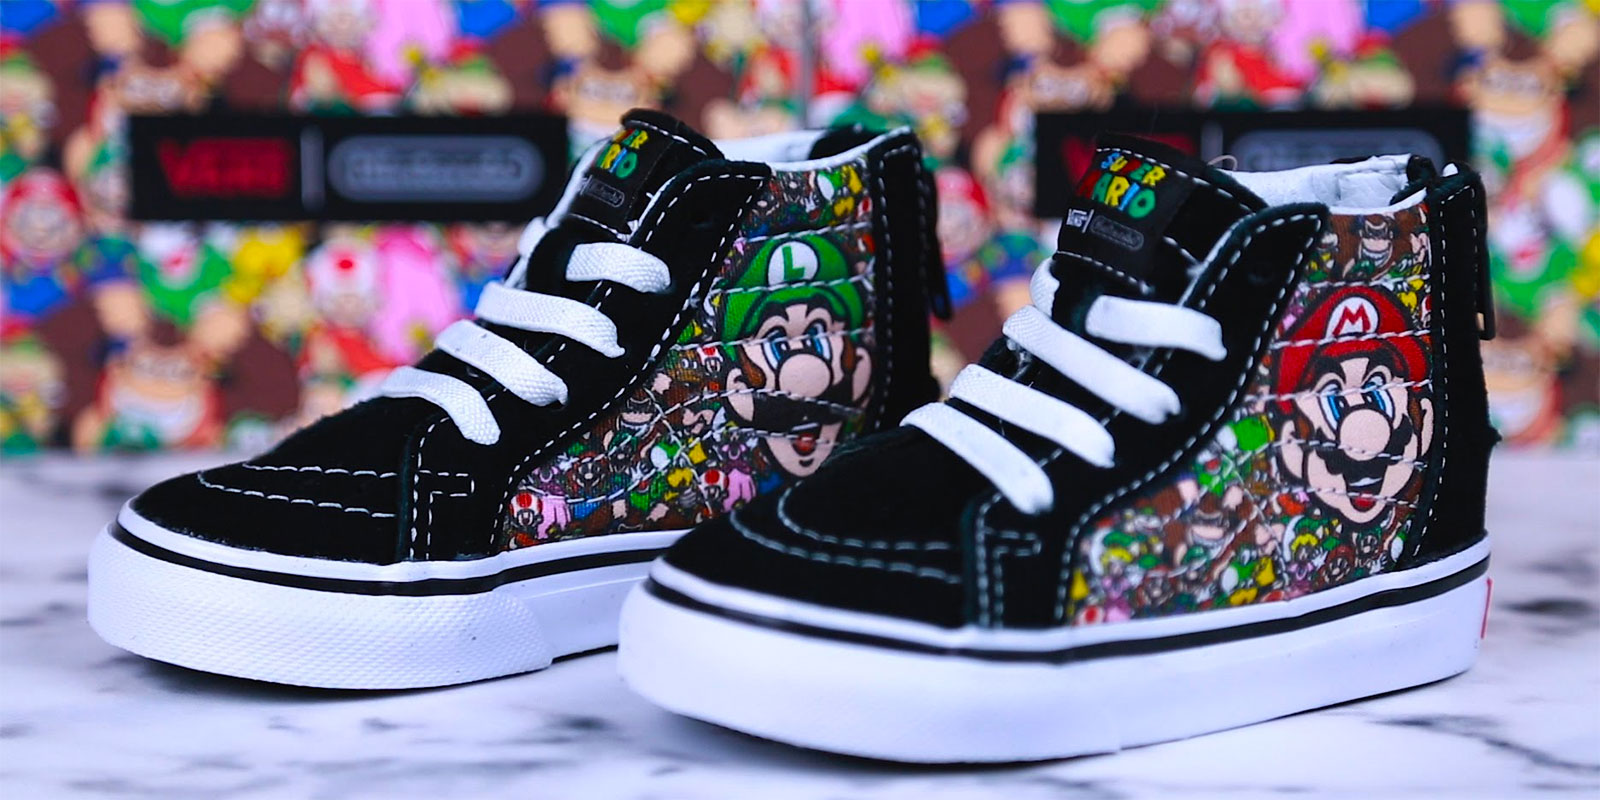 7b56f9e6fc9731 The 15 Vans Nintendo Shoe Designs